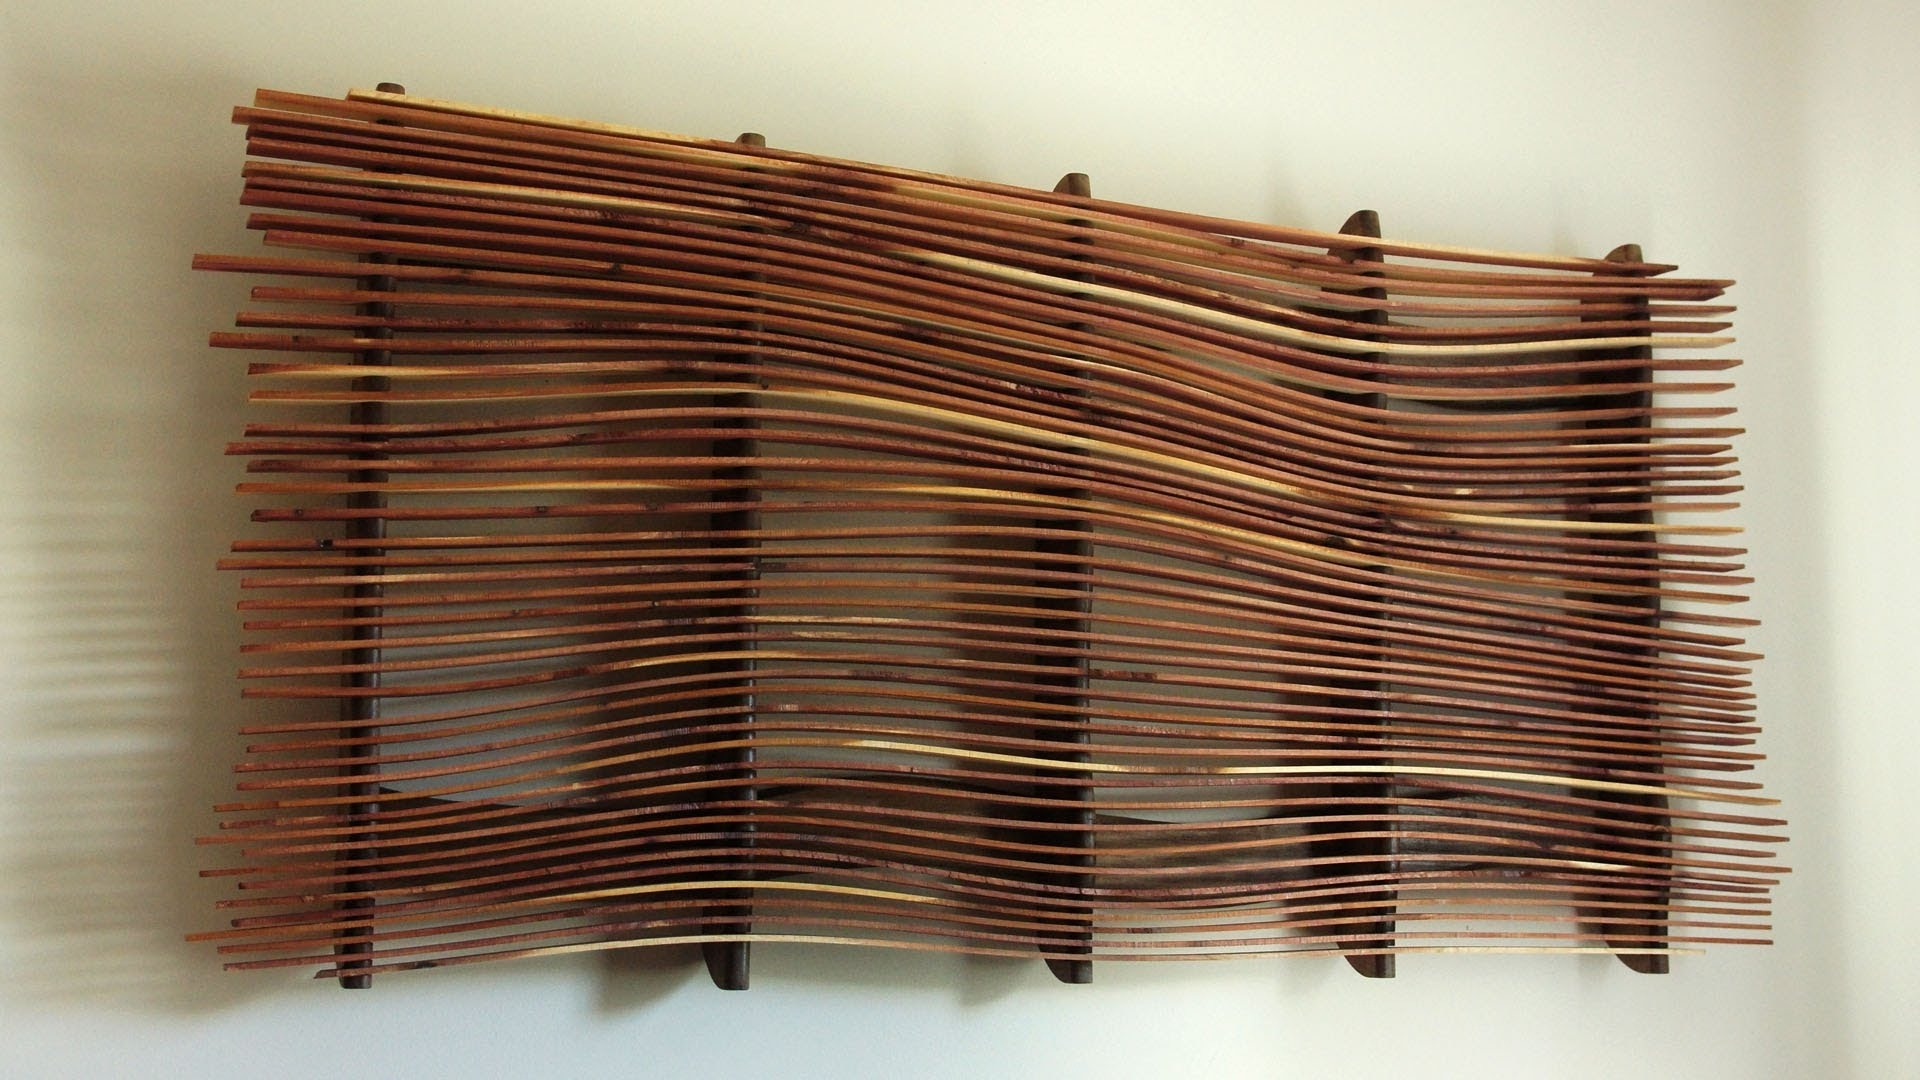 Newest Wall Art From Scrap Wood – Youtube Inside Wood Wall Art (View 3 of 15)